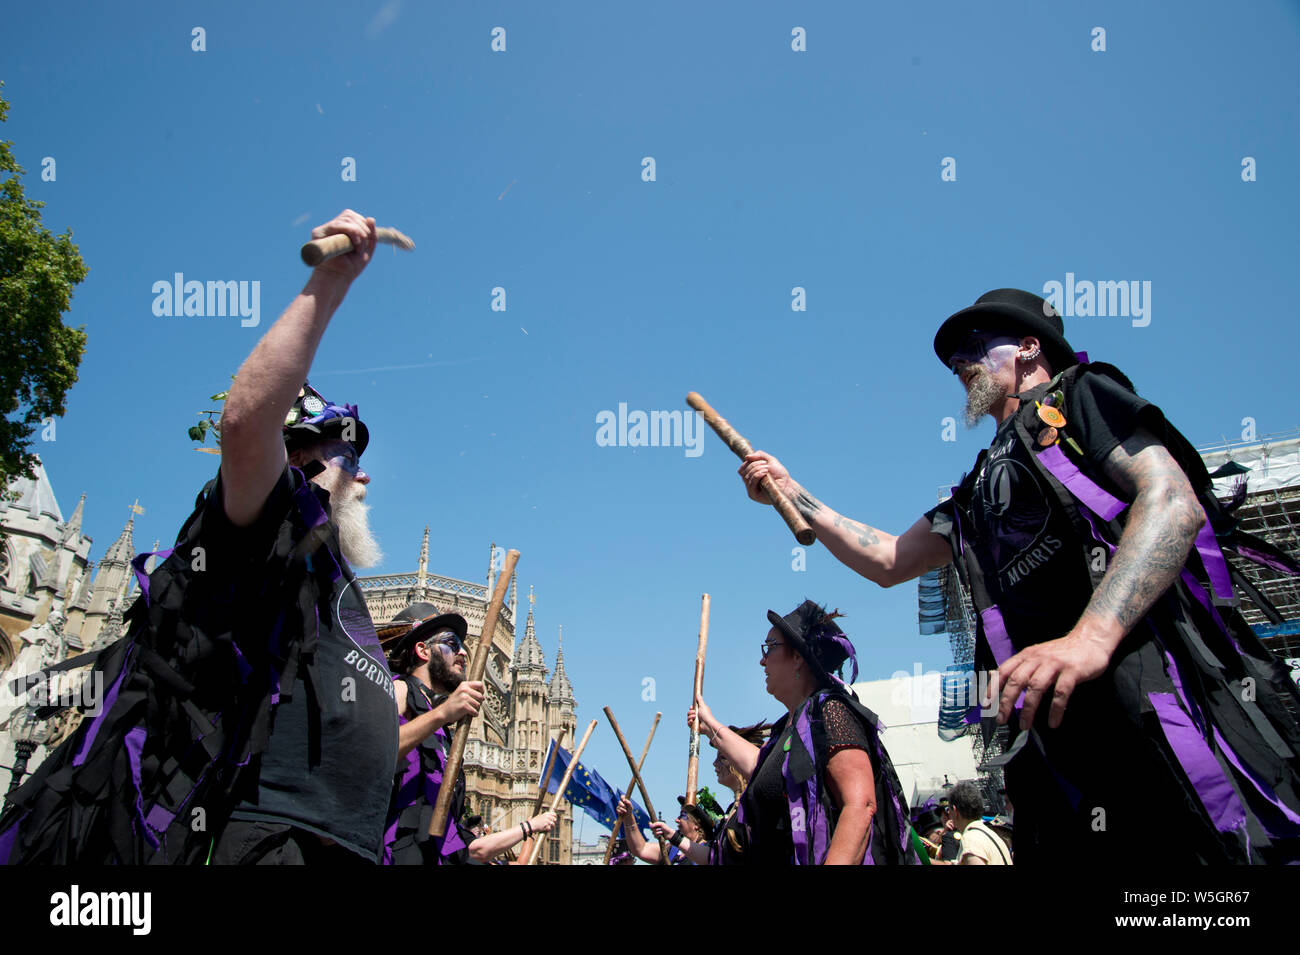 July 23rd 2019. Houses of Parliament. Morris dancers protest at May 4th 2020 being designated VE day celebration instead of being the May Day holiday. Stock Photo